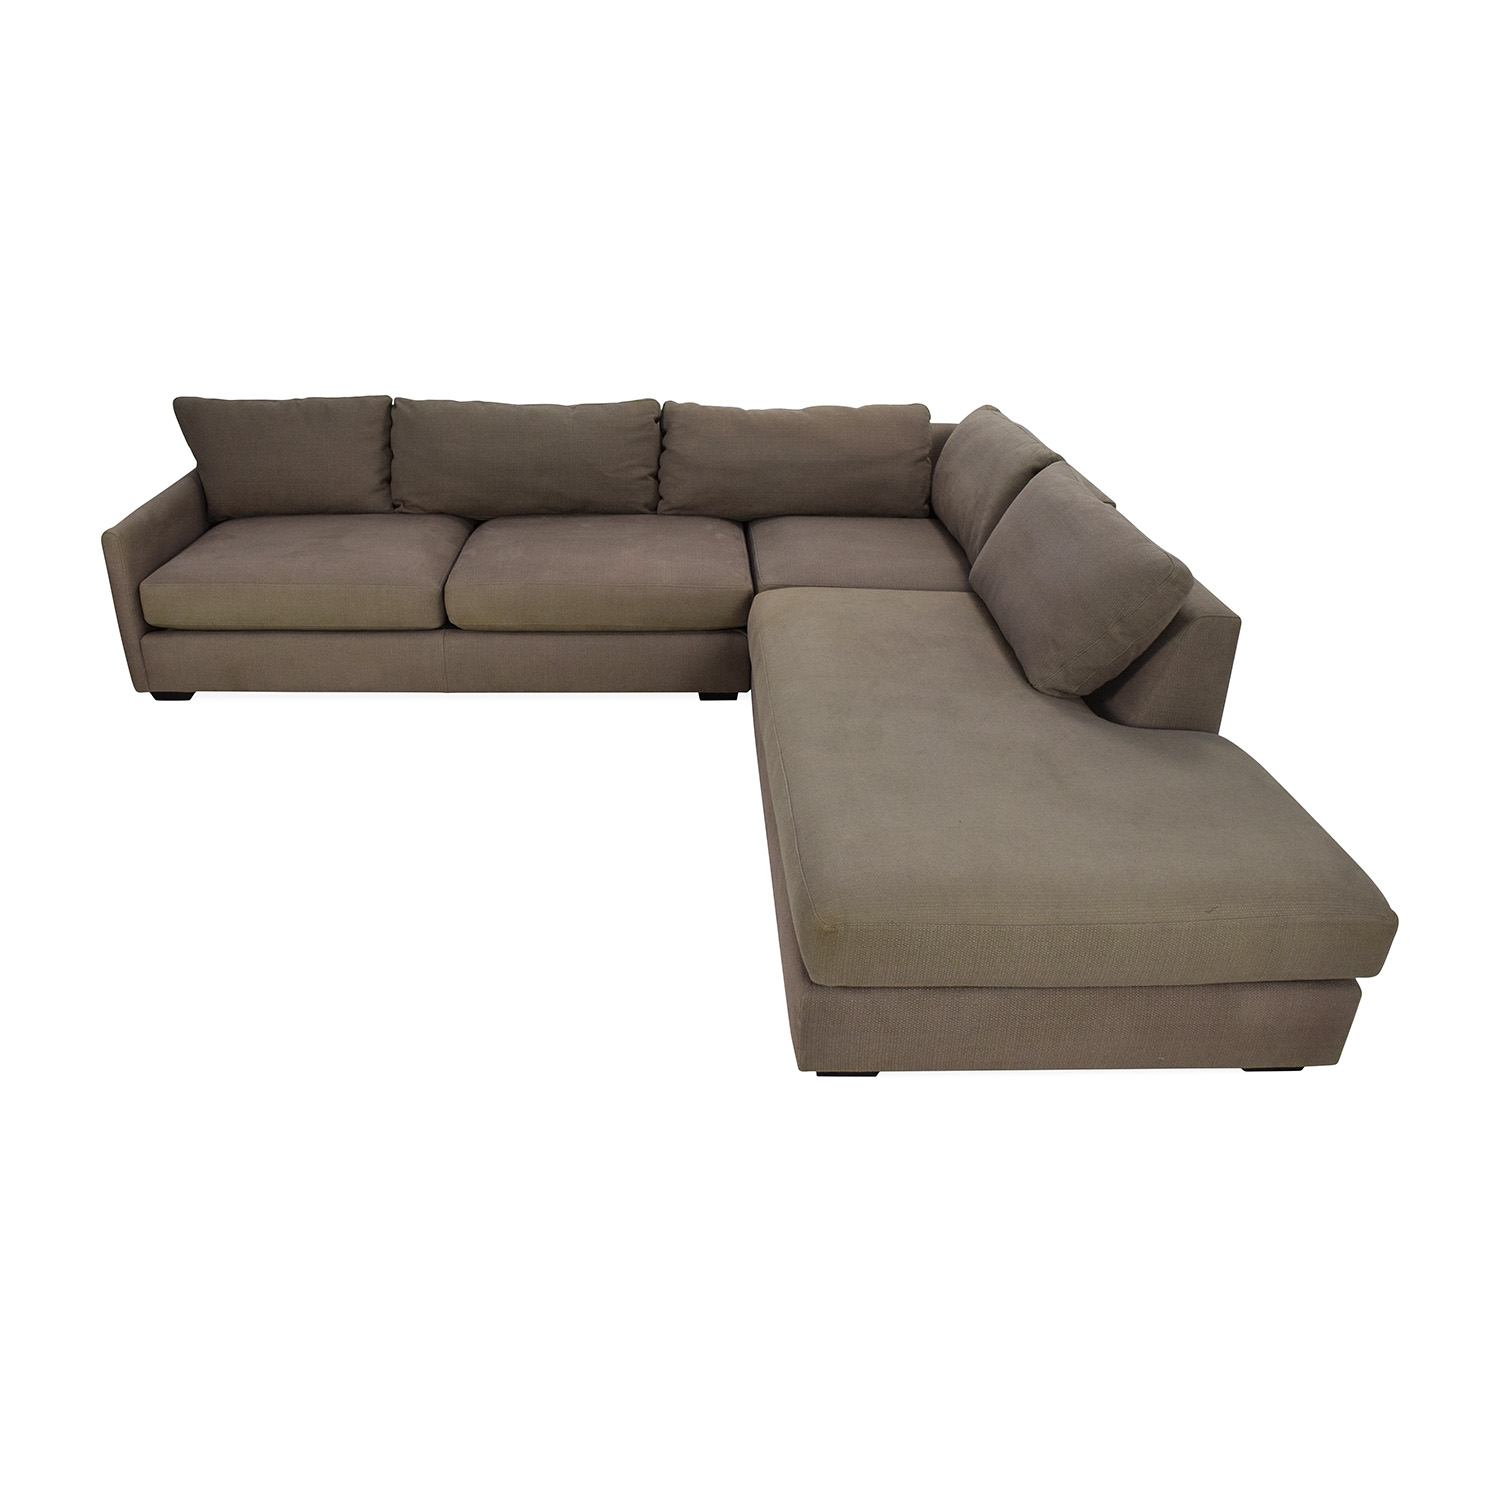 Crate and Barrel Crate & Barrel Domino Sectional Sofa nyc